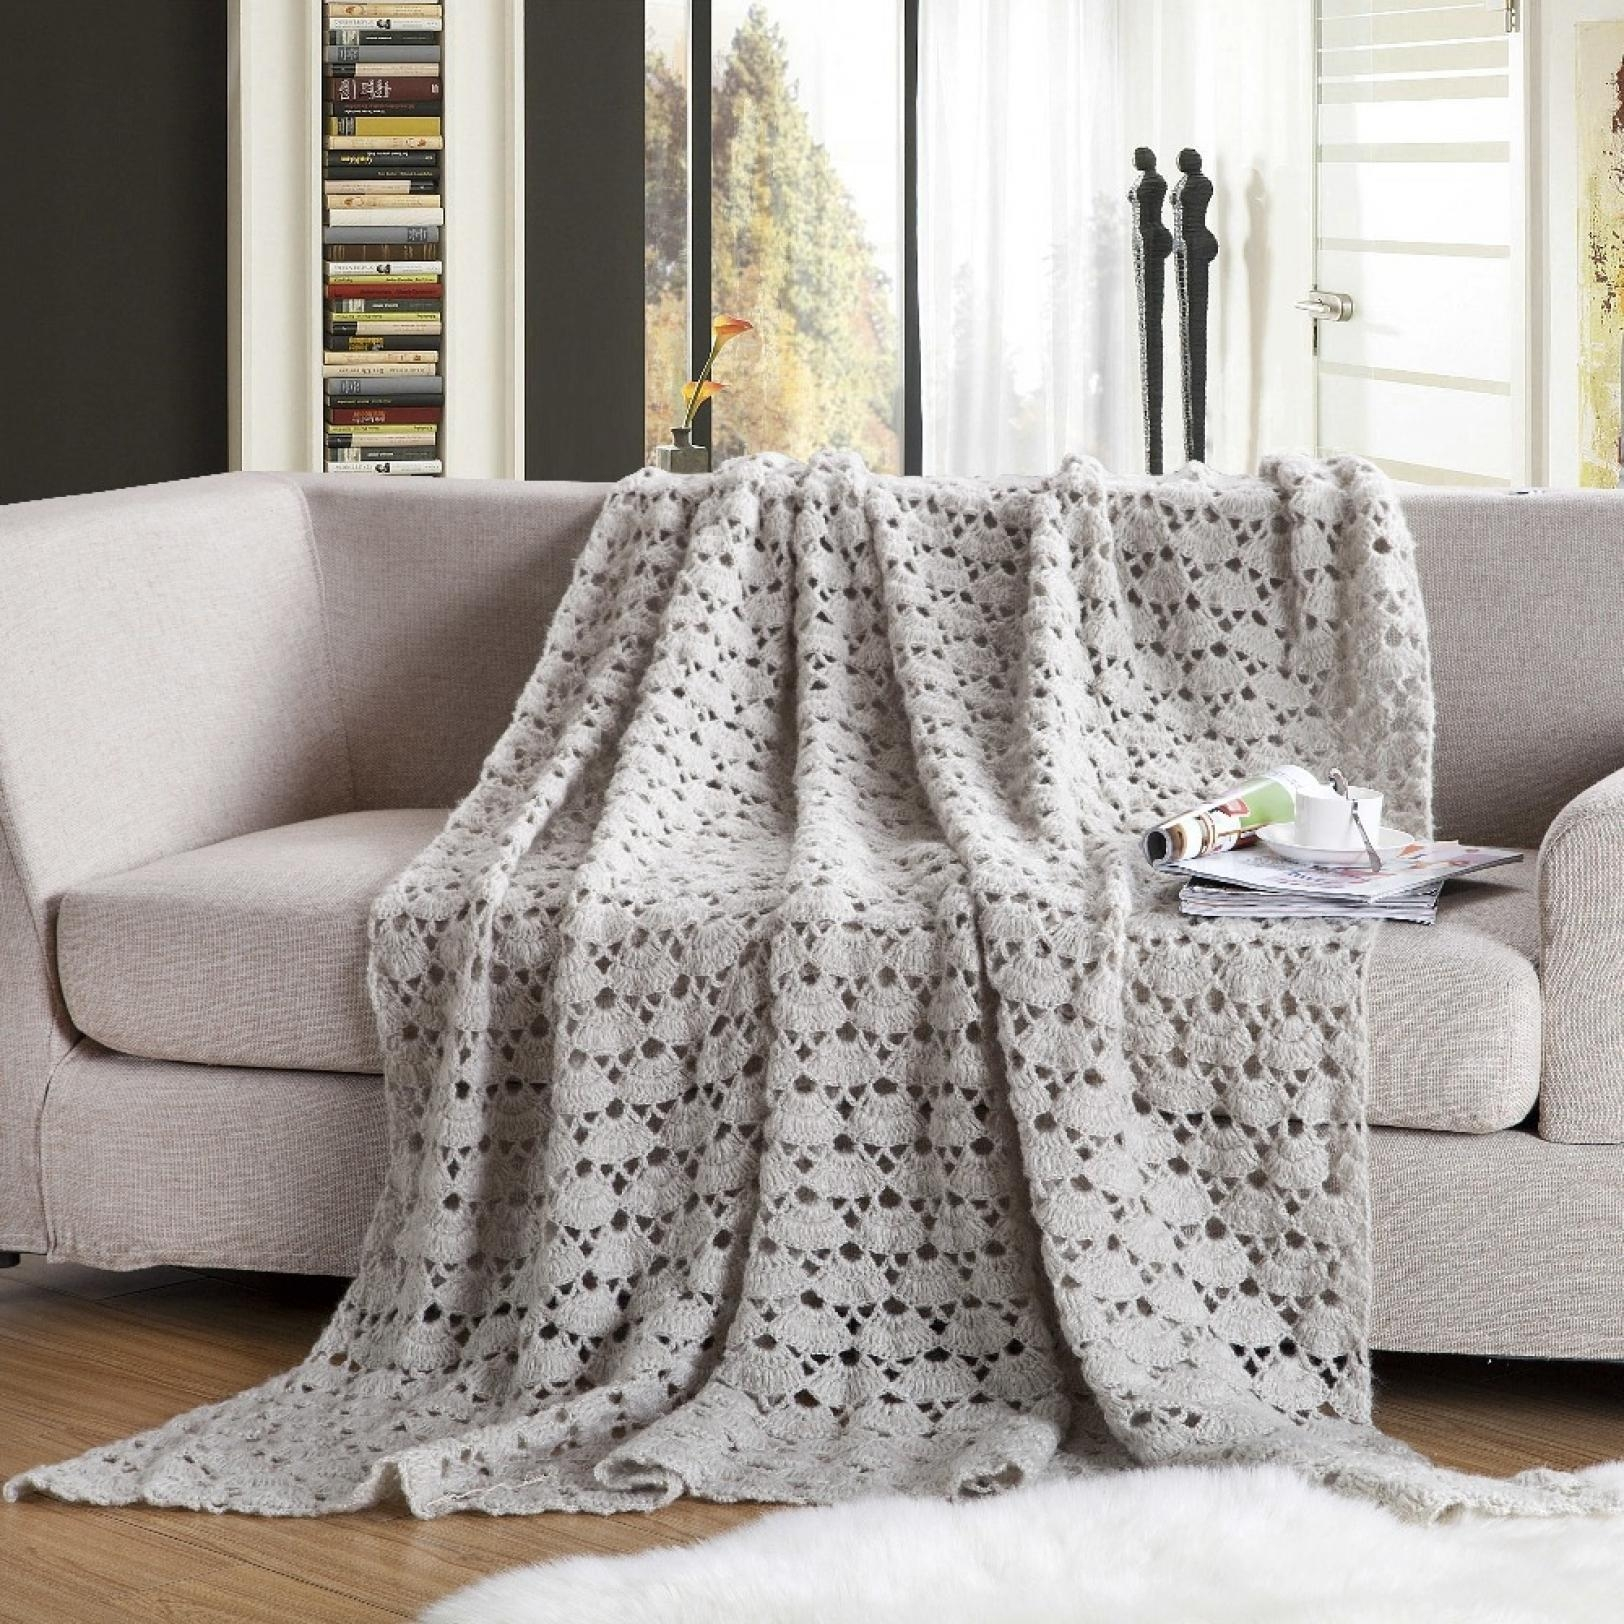 Sofas Center : Surprisingw Blankets For Sofa Photos Design Best Inside Cotton Throws For Sofas And Chairs (Image 15 of 20)